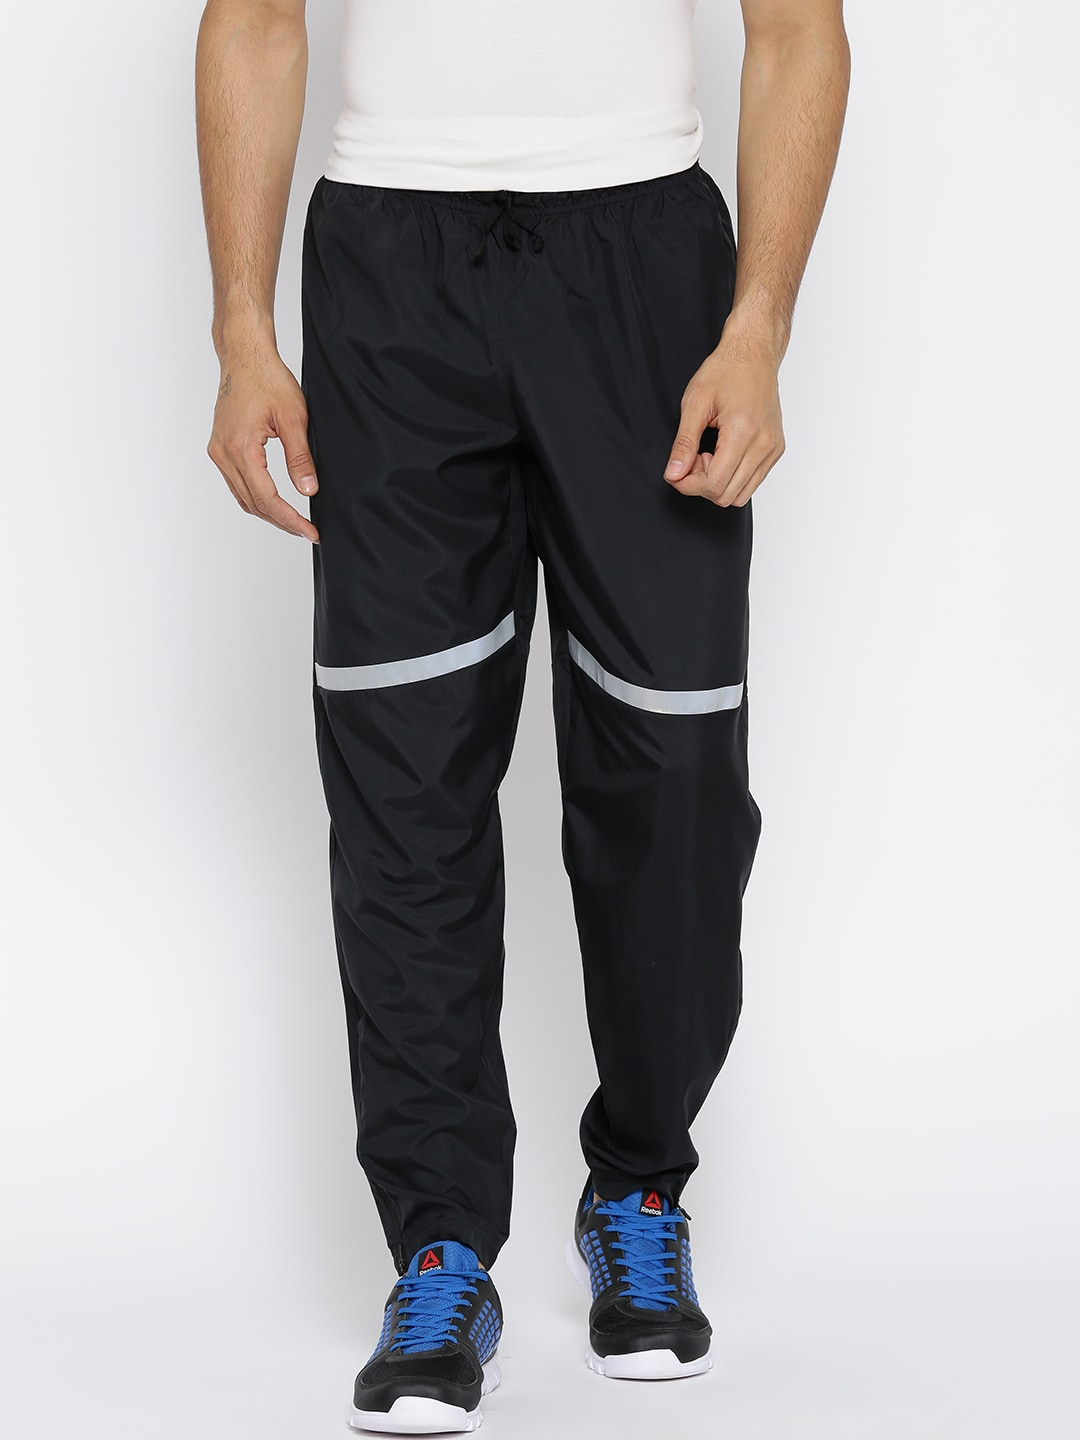 Reebok Easy Tone Track Pants Pants - Buy Reebok Easy Tone Track Pants Pants  online in India 052c5e250